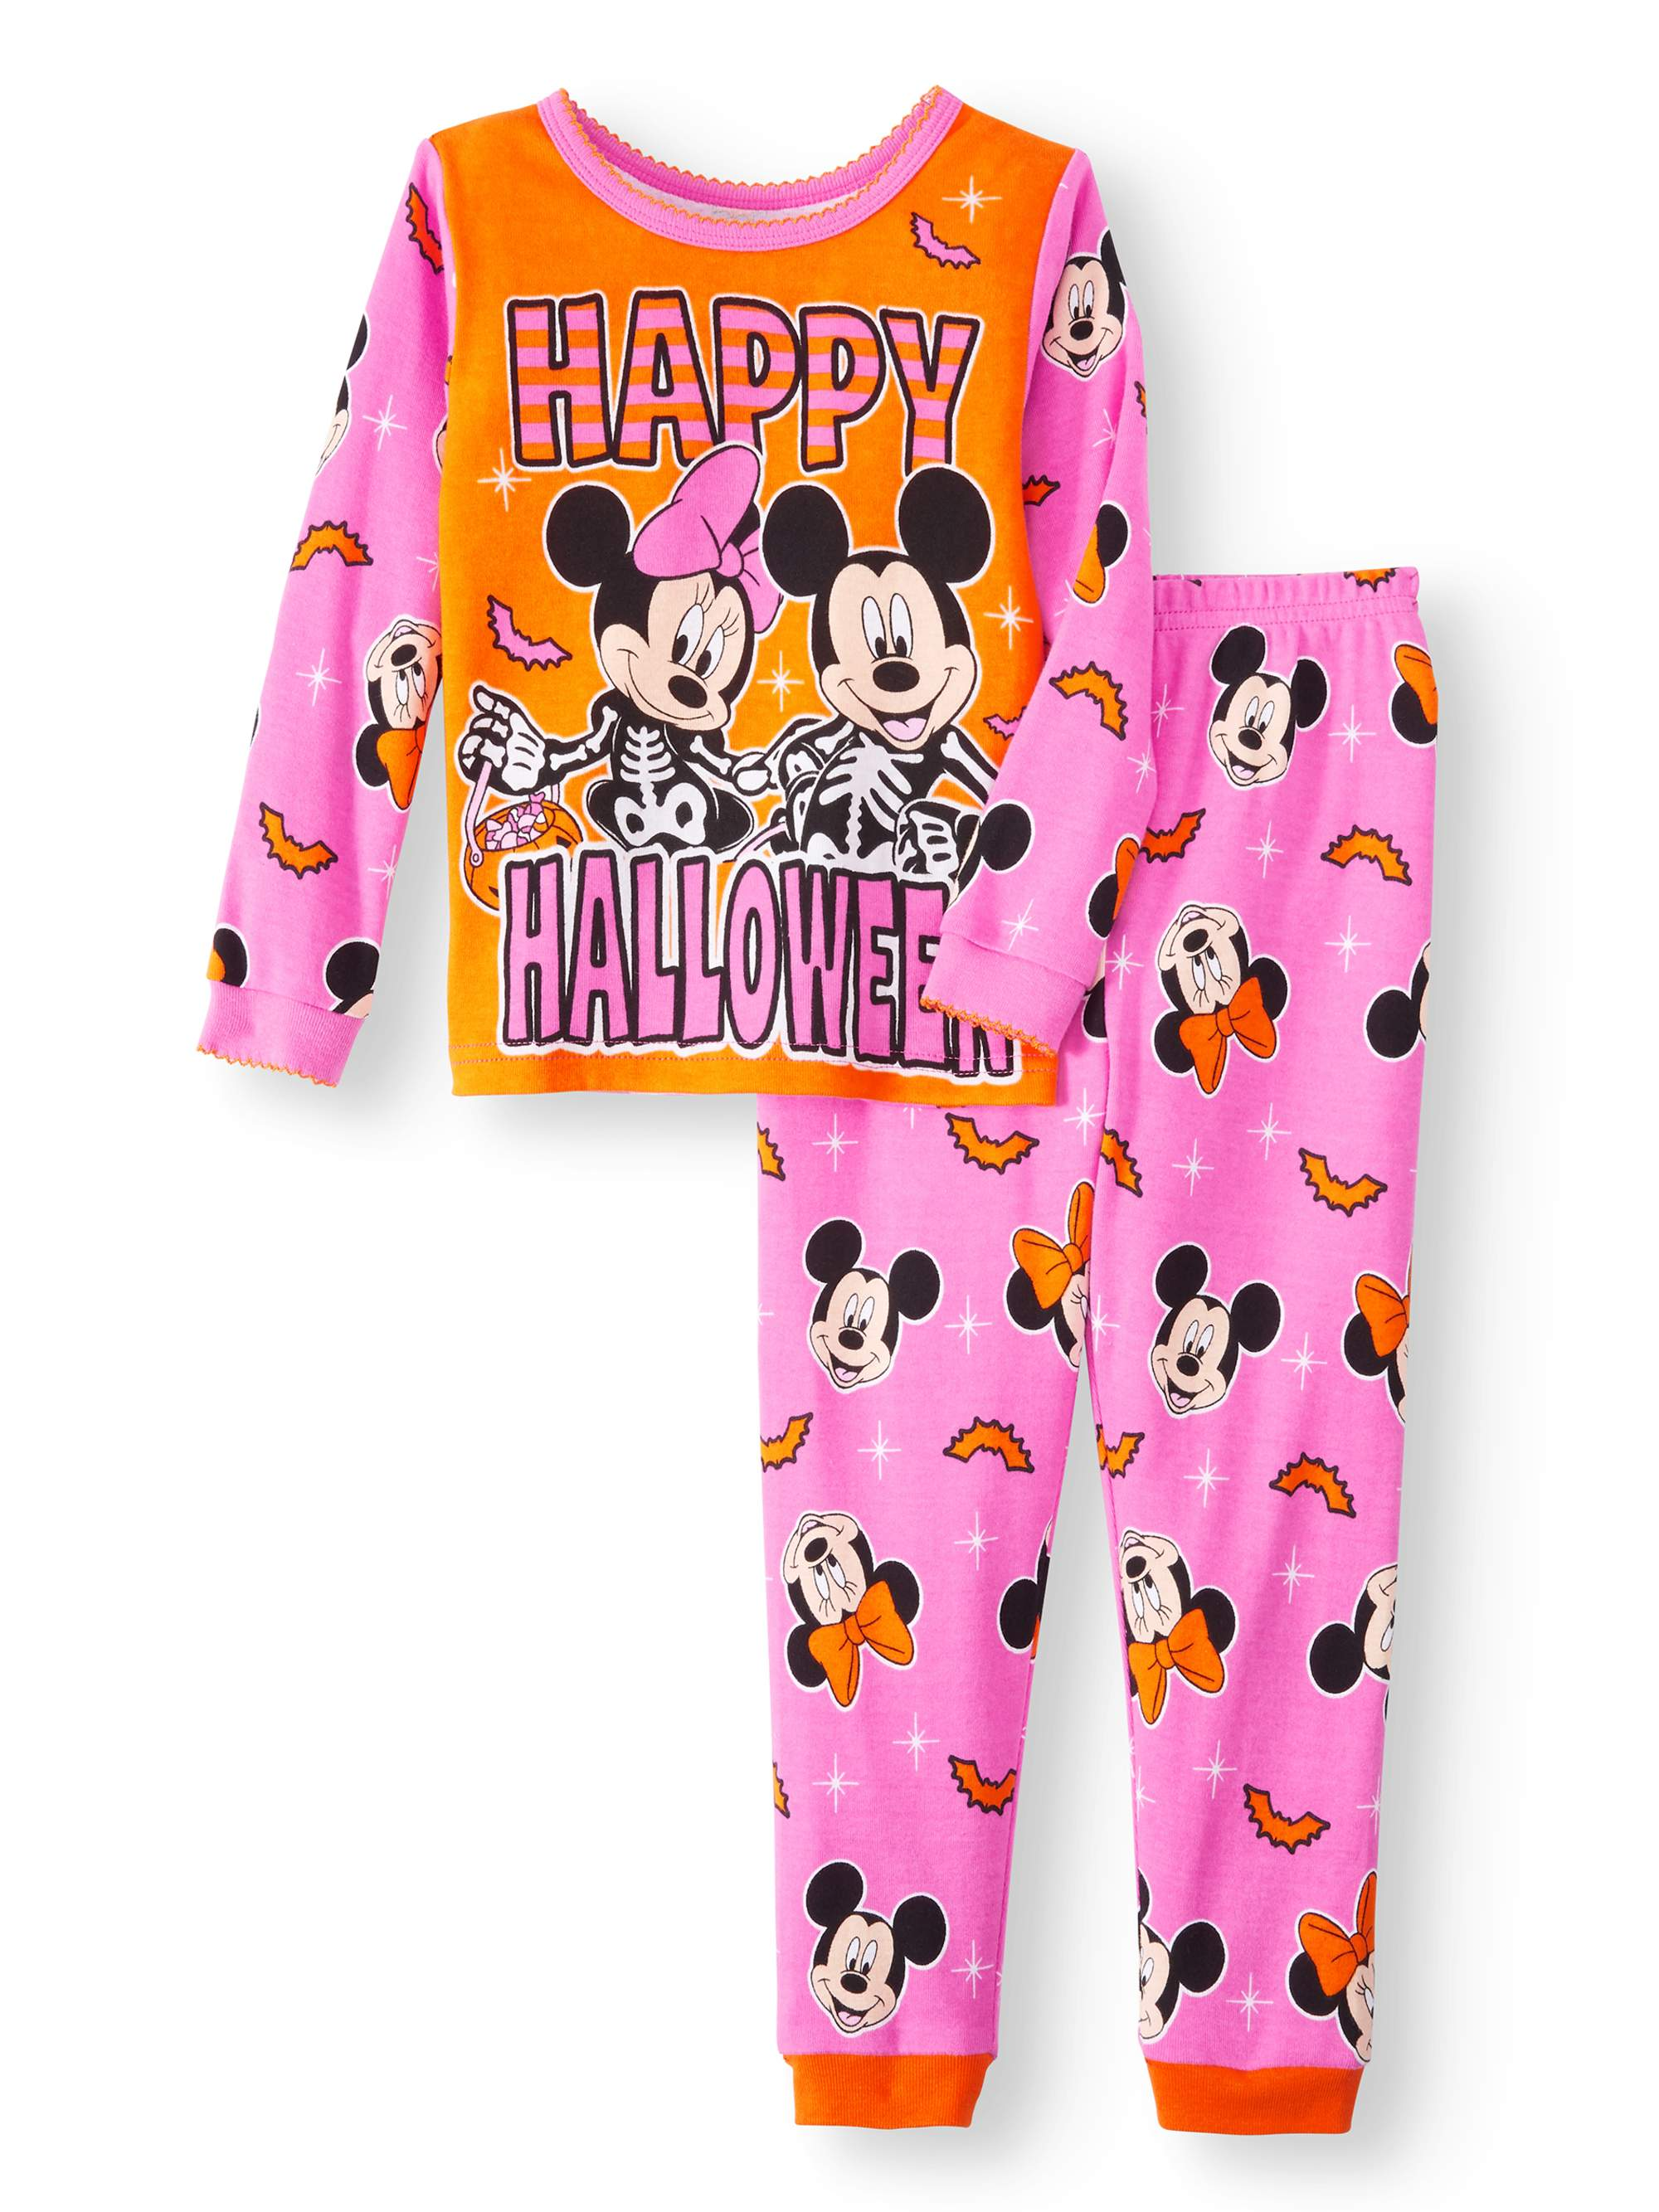 Halloween Glow-in-the-Dark Cotton Tight Fit Pajamas, 2-piece Set (Toddler Girls)